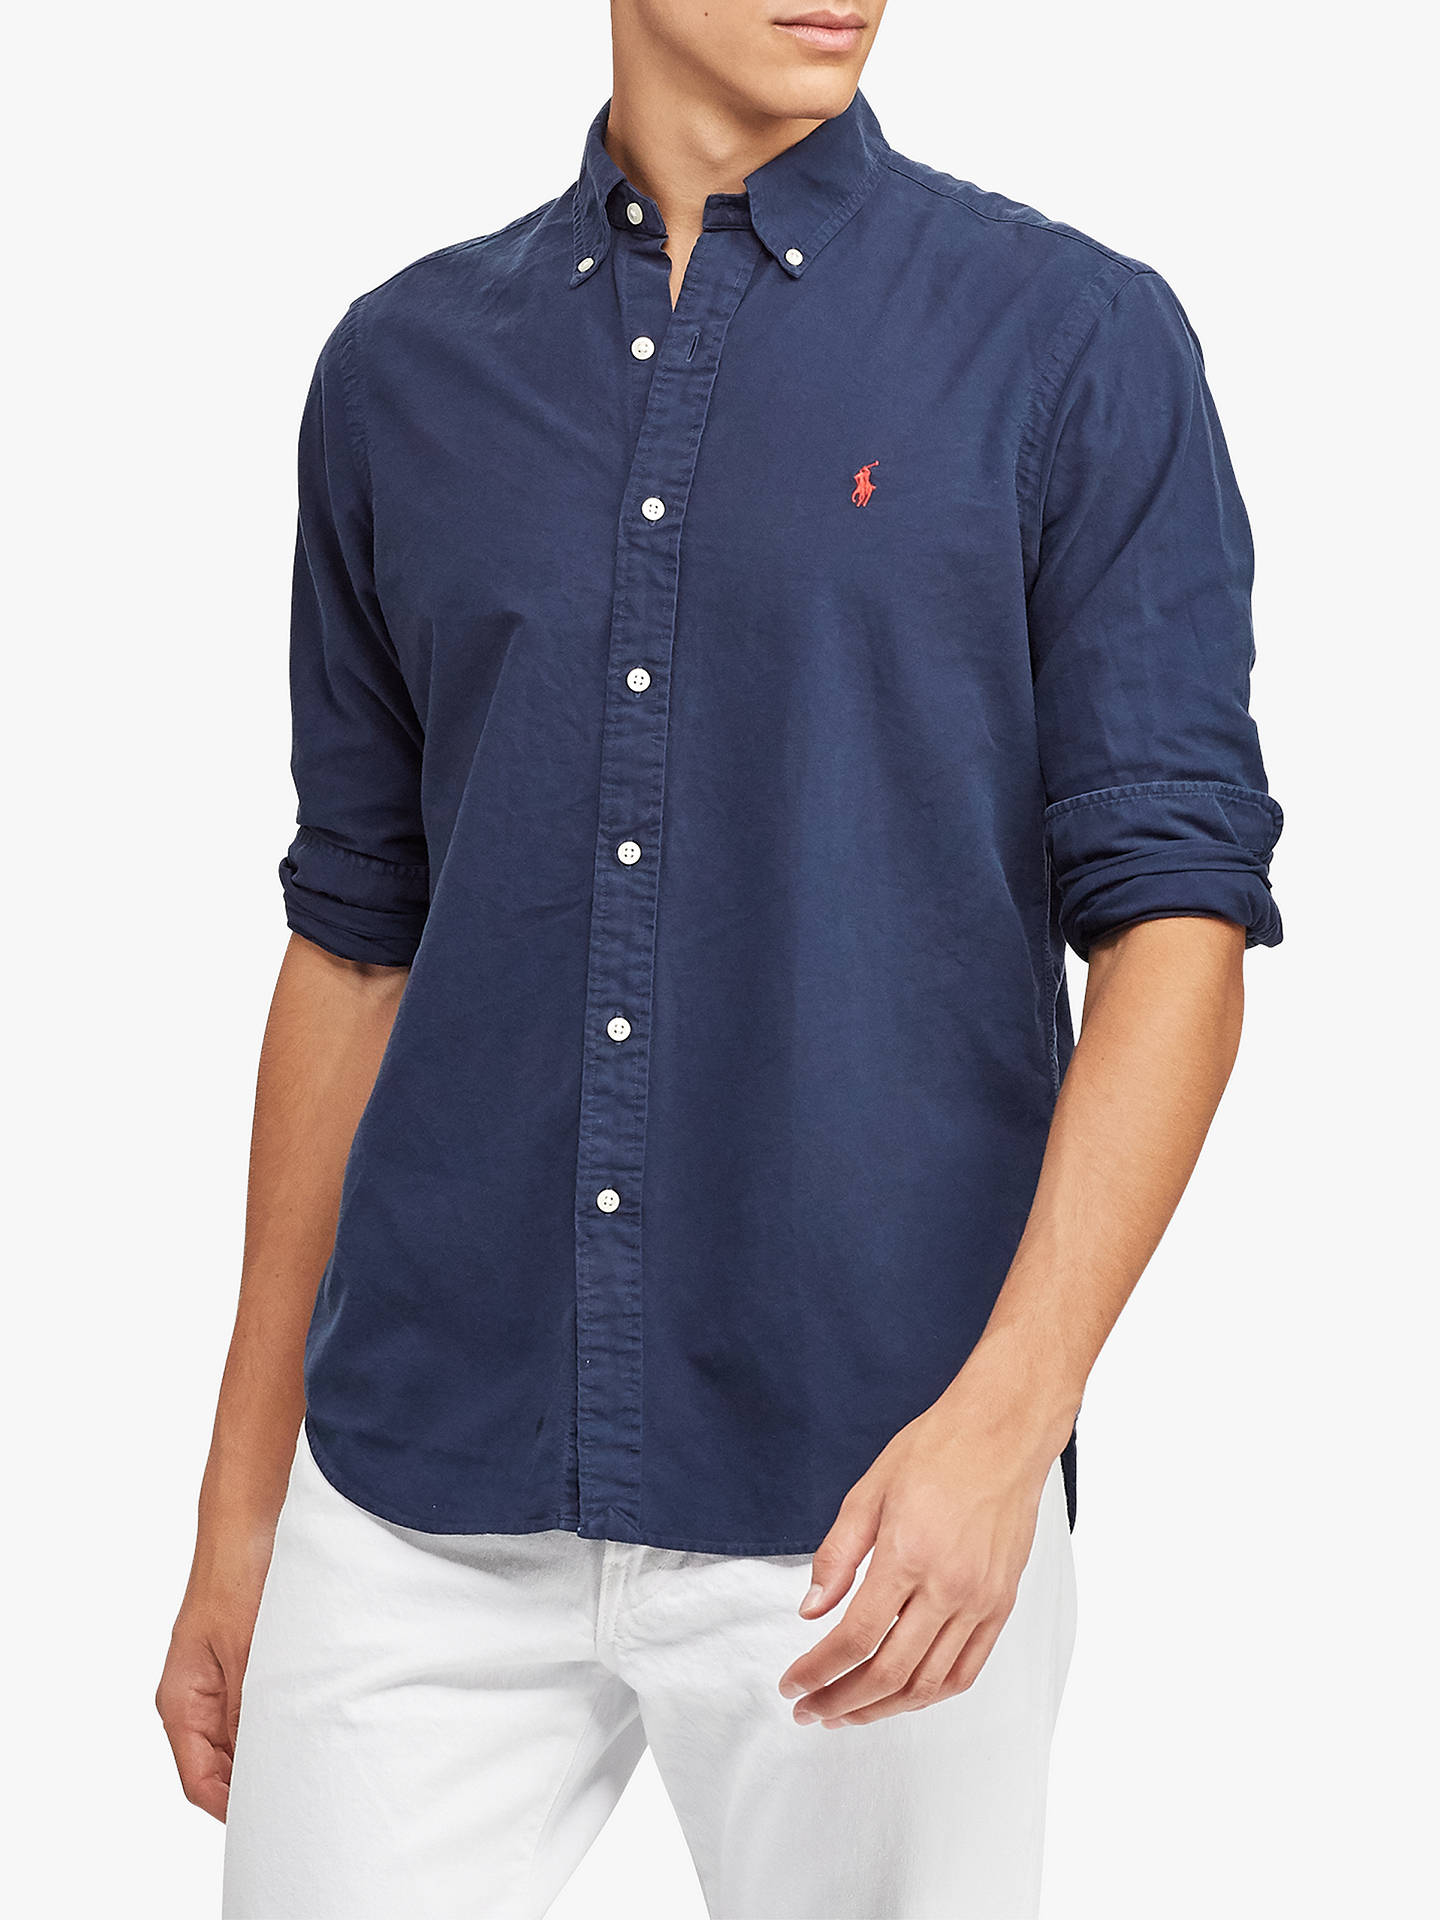 e112929adc893 Buy Polo Ralph Lauren Long Sleeve Slim Fit Button Down Shirt, Navy, M  Online ...